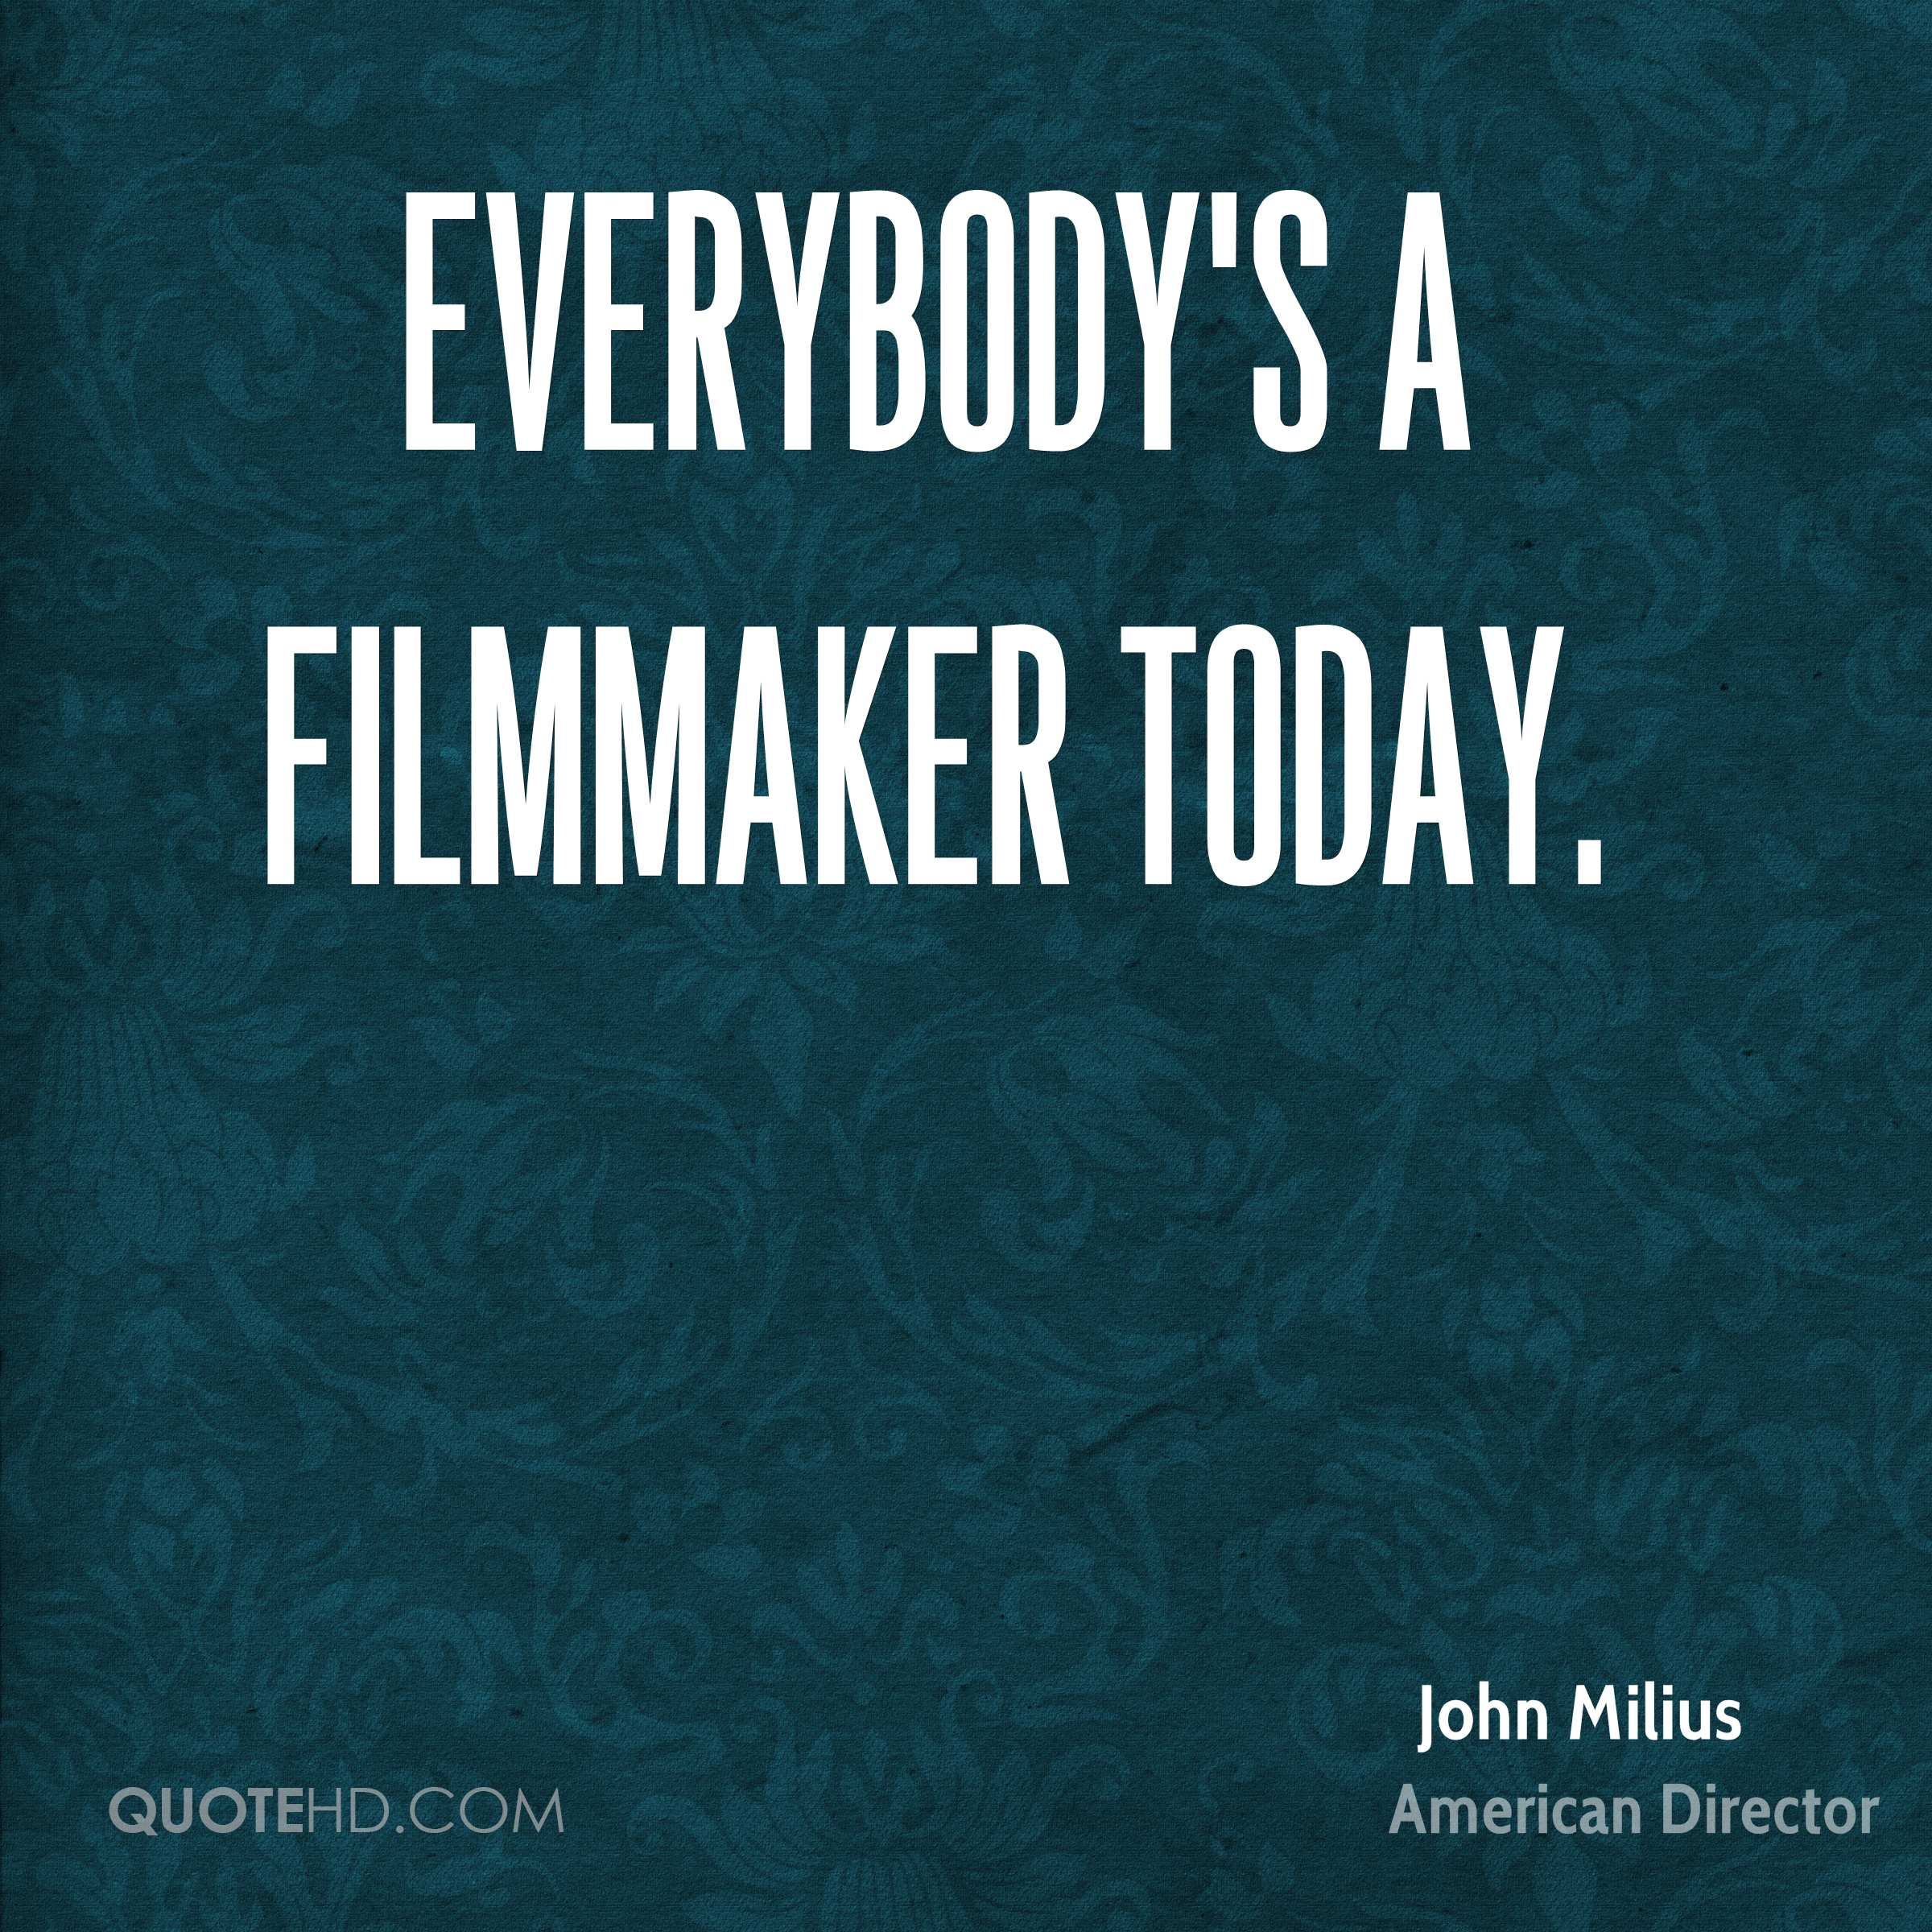 Everybody's a filmmaker today.